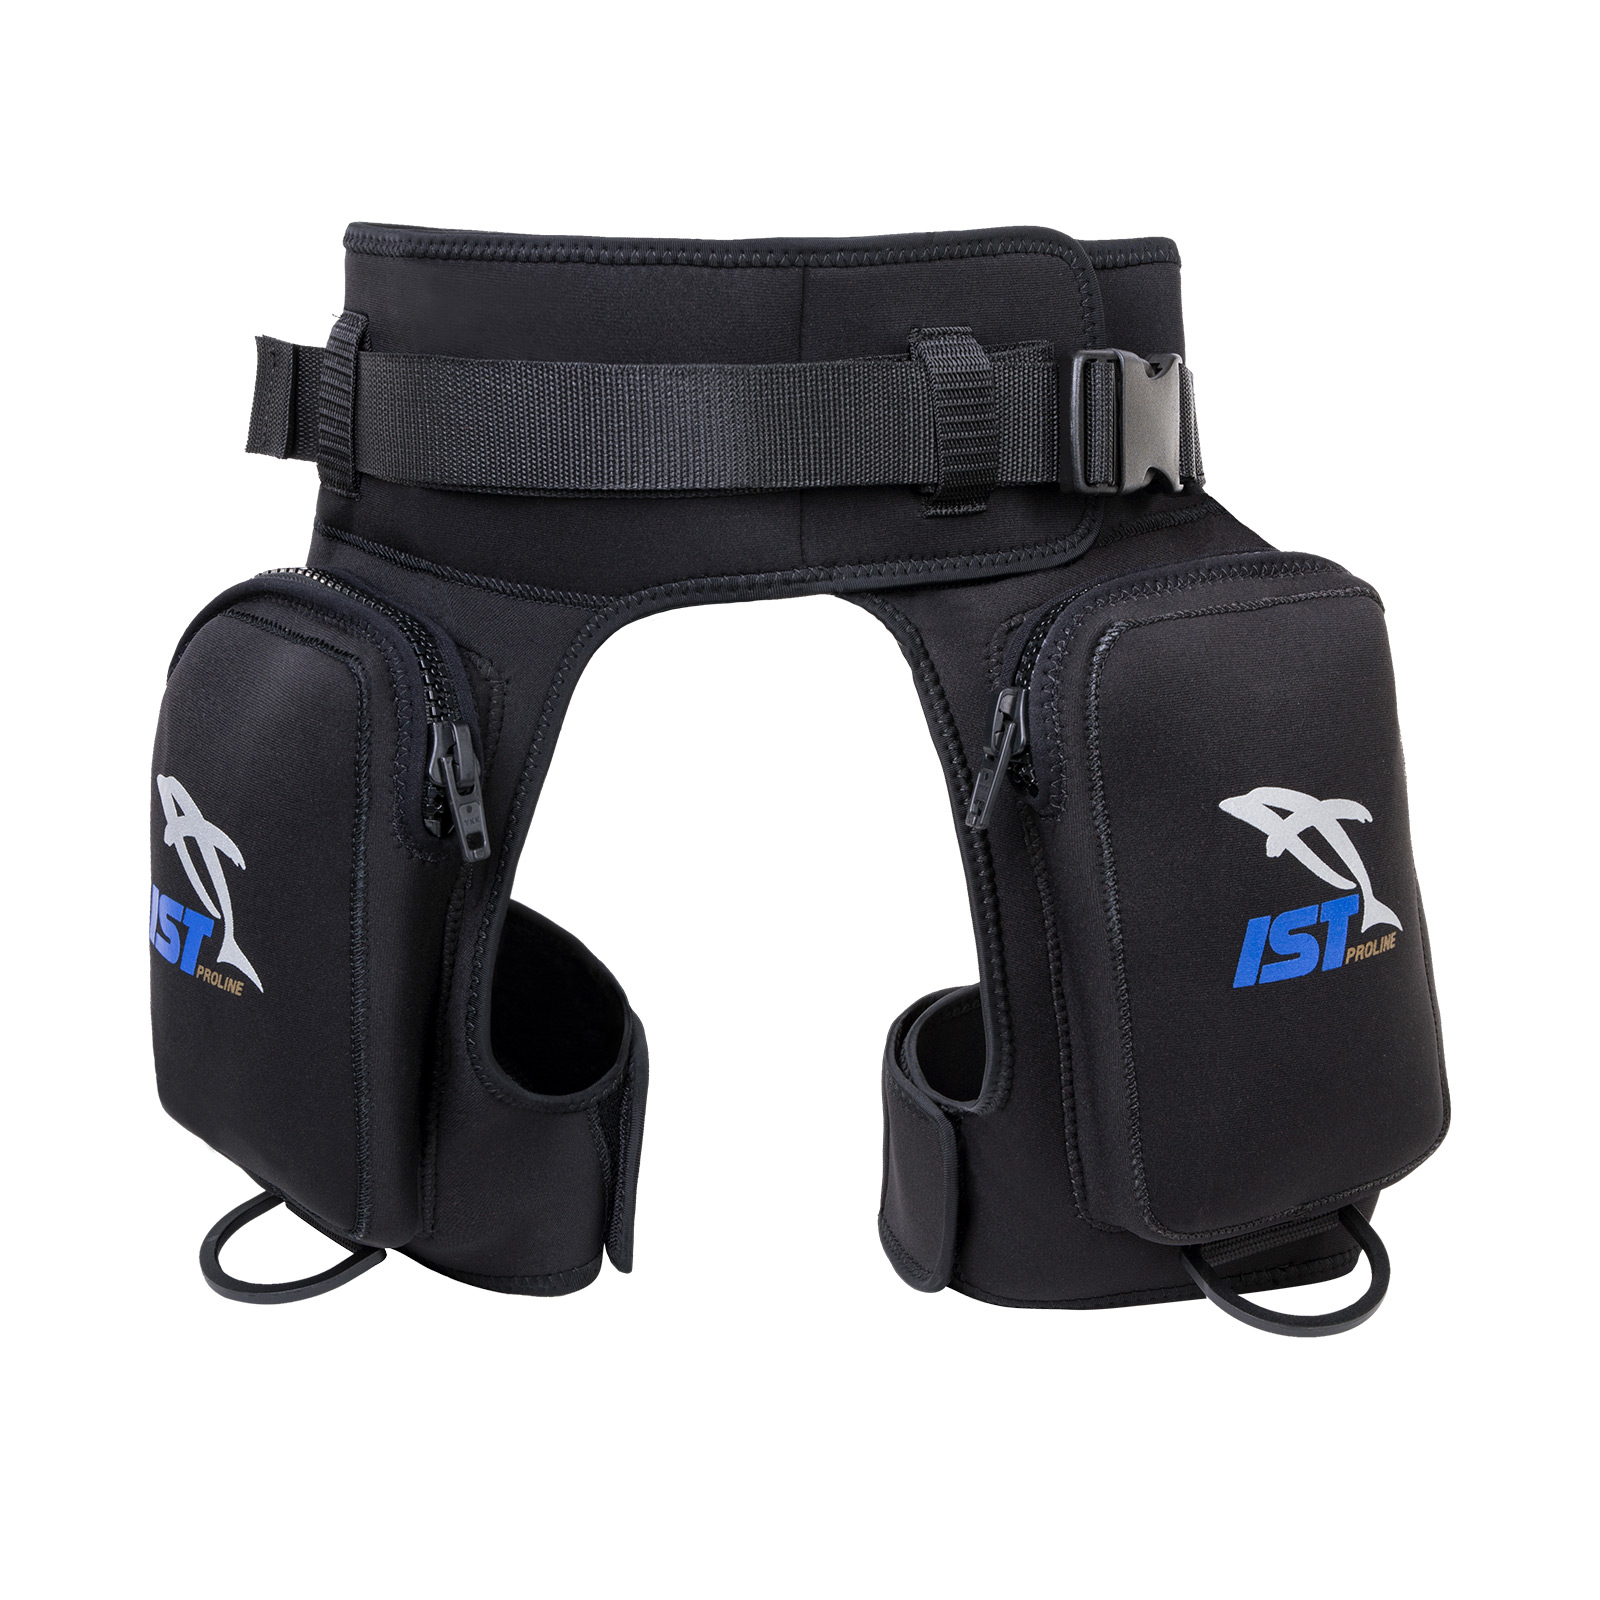 IST Diving System :: RECREATIONAL :: ACCESSORIES :: Diver